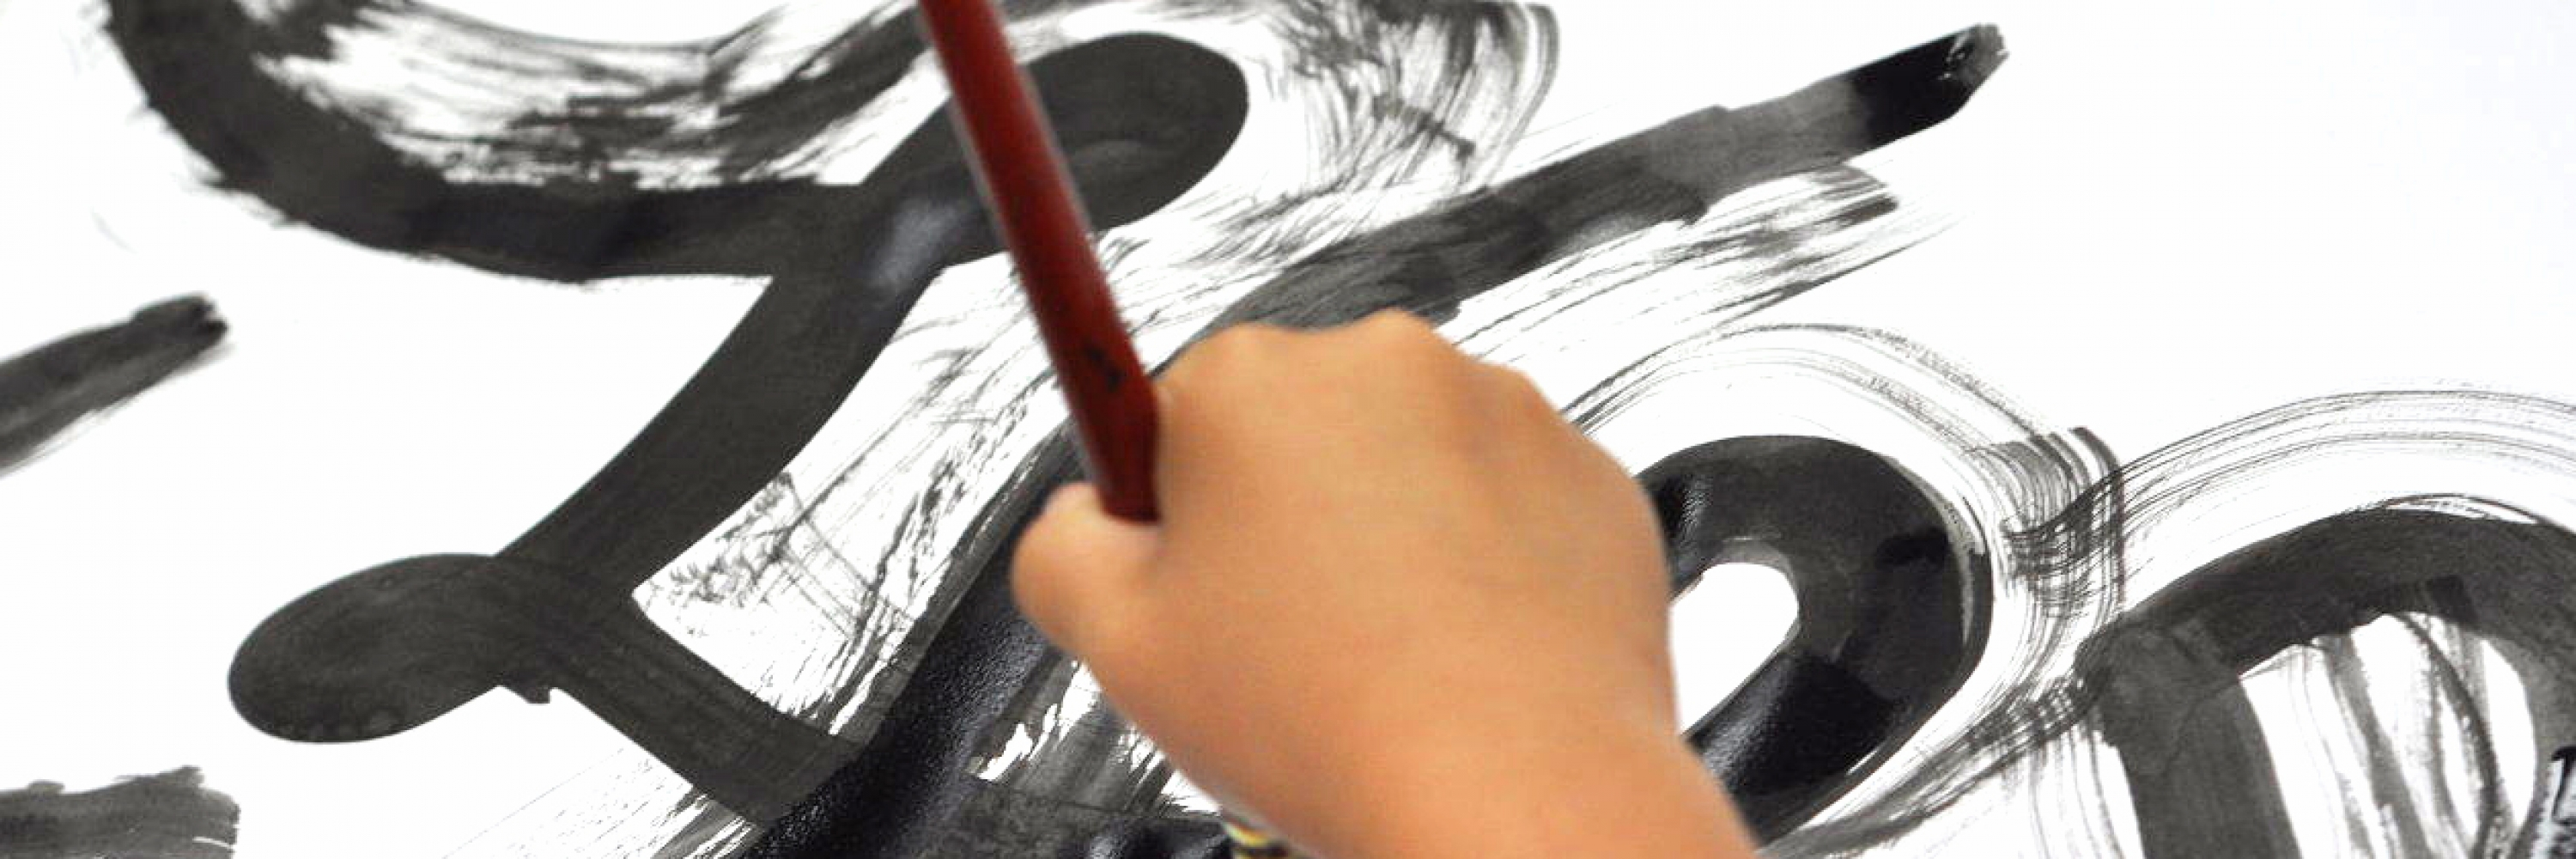 photo of a child's hand painting a black brush stroke